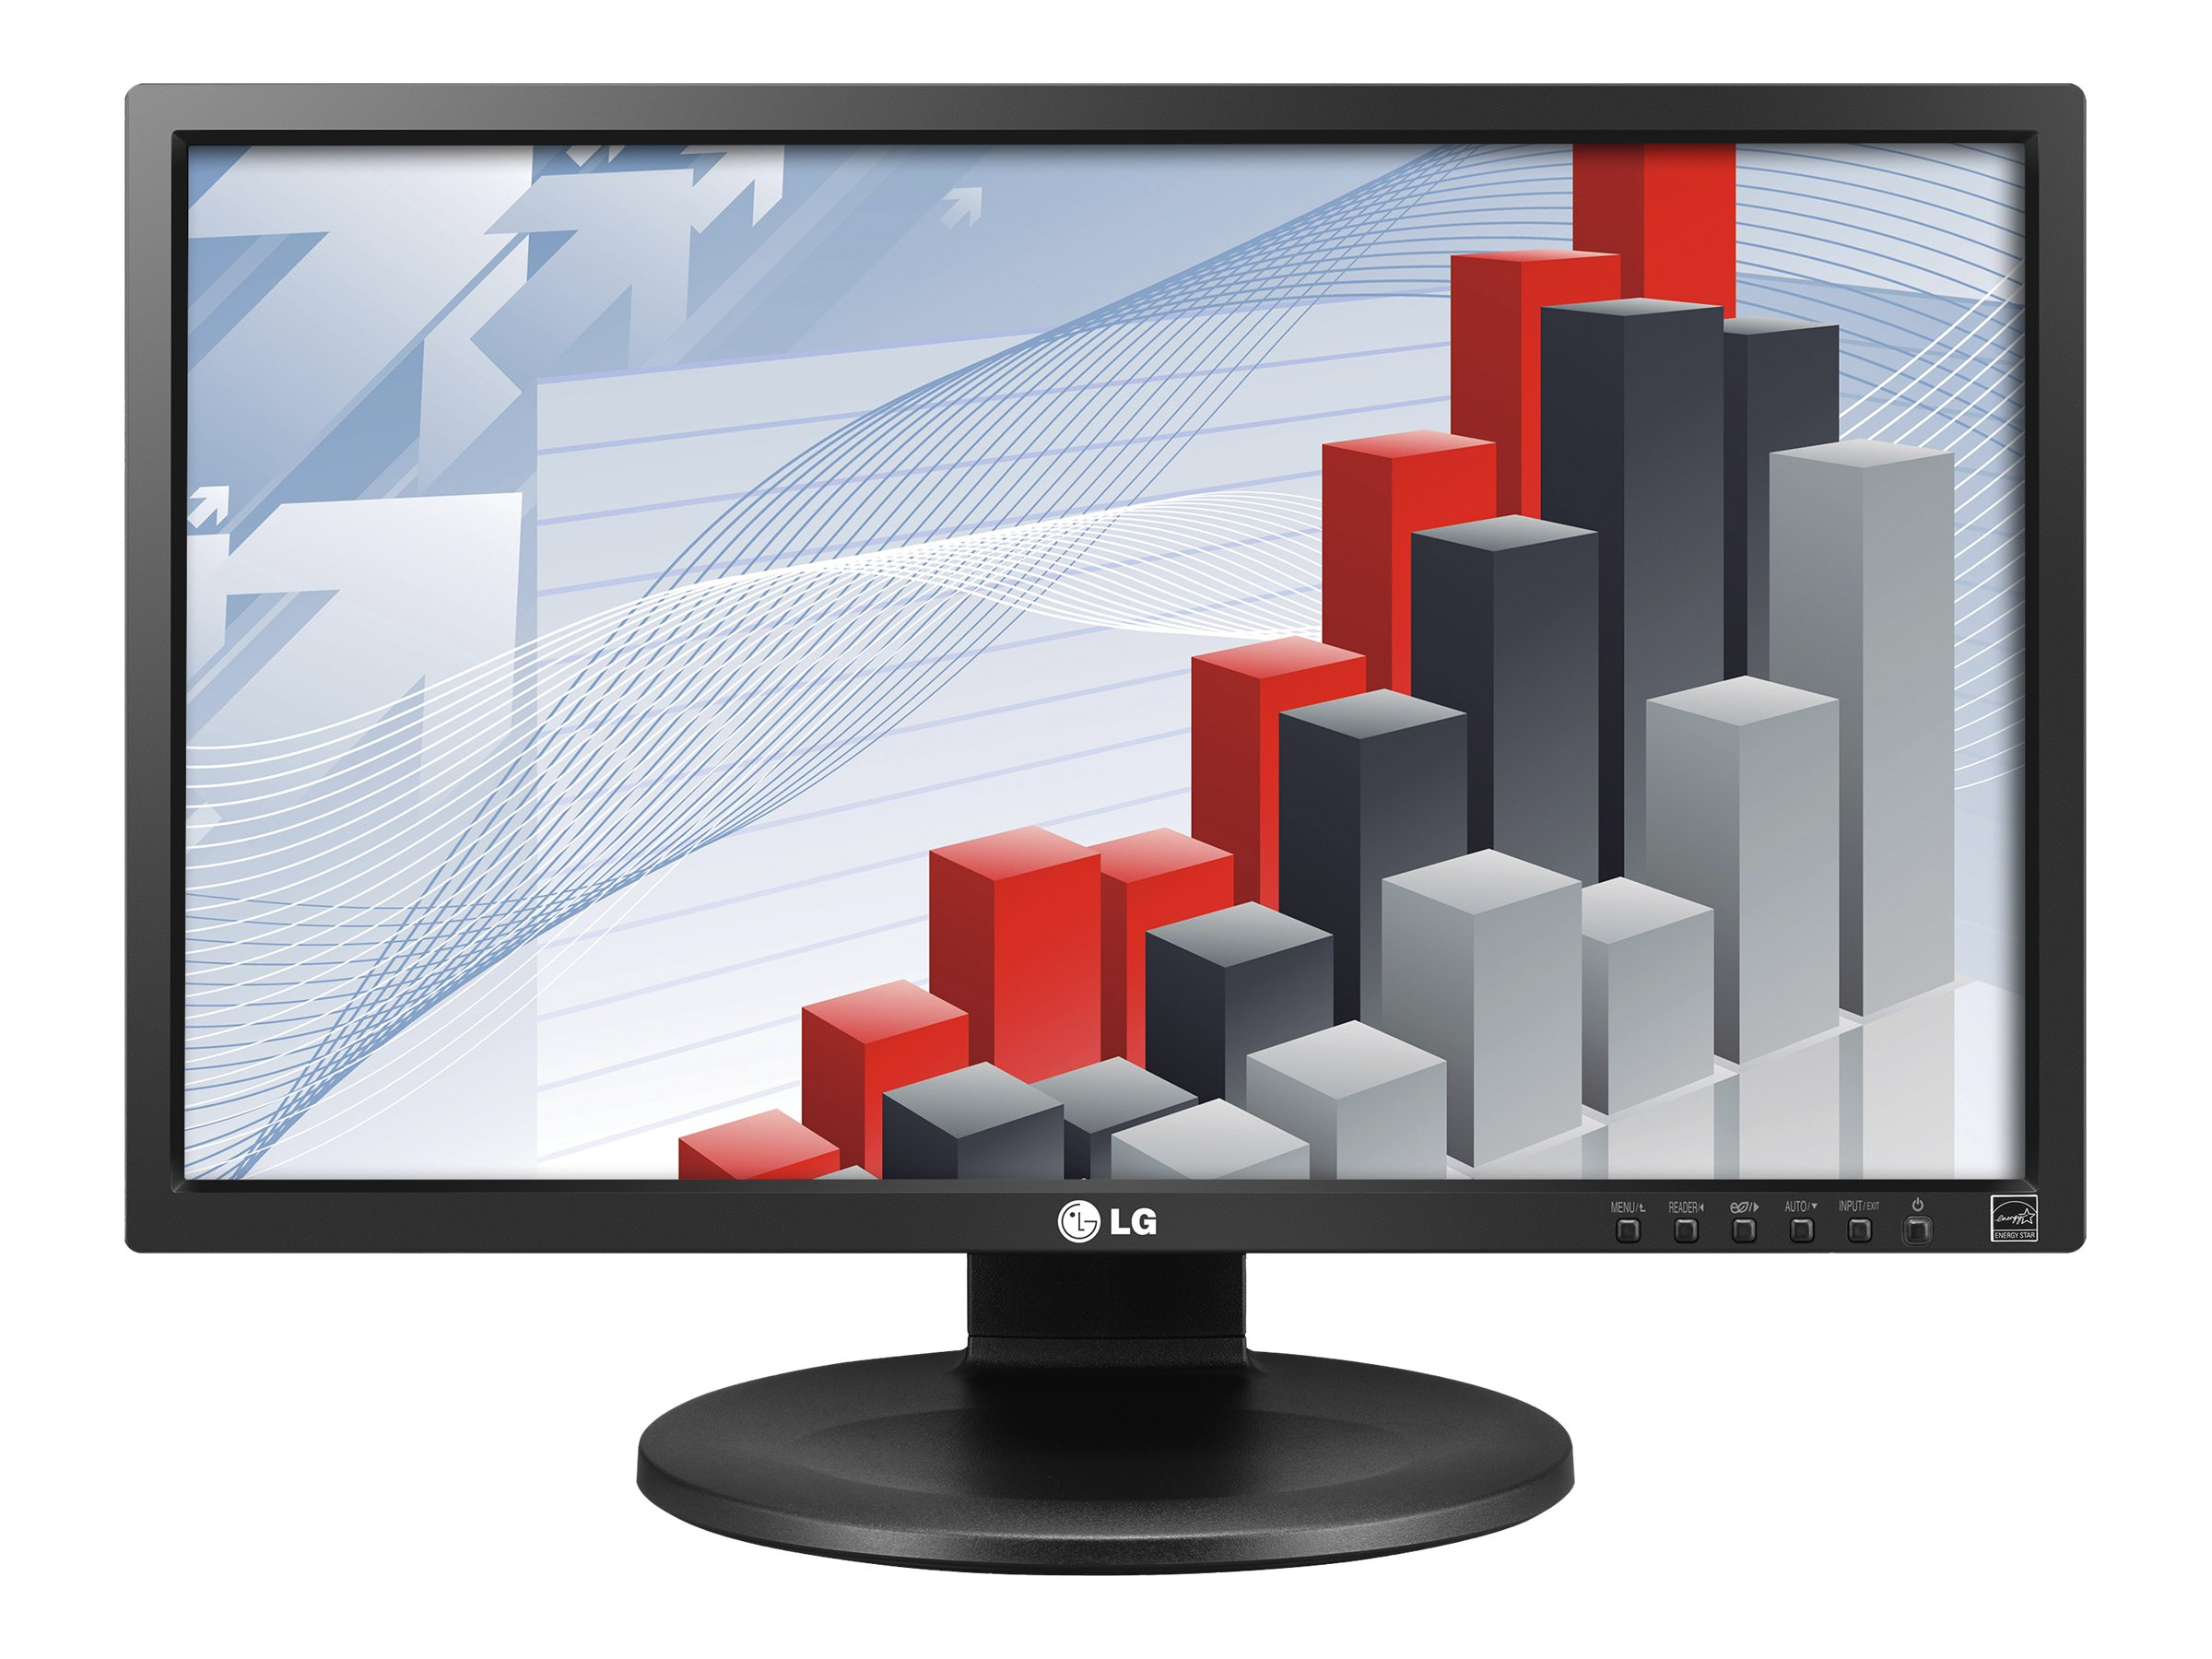 LG 24 MB35P-B Full HD LED-LCD Monitor, Black, 24MB35P-B